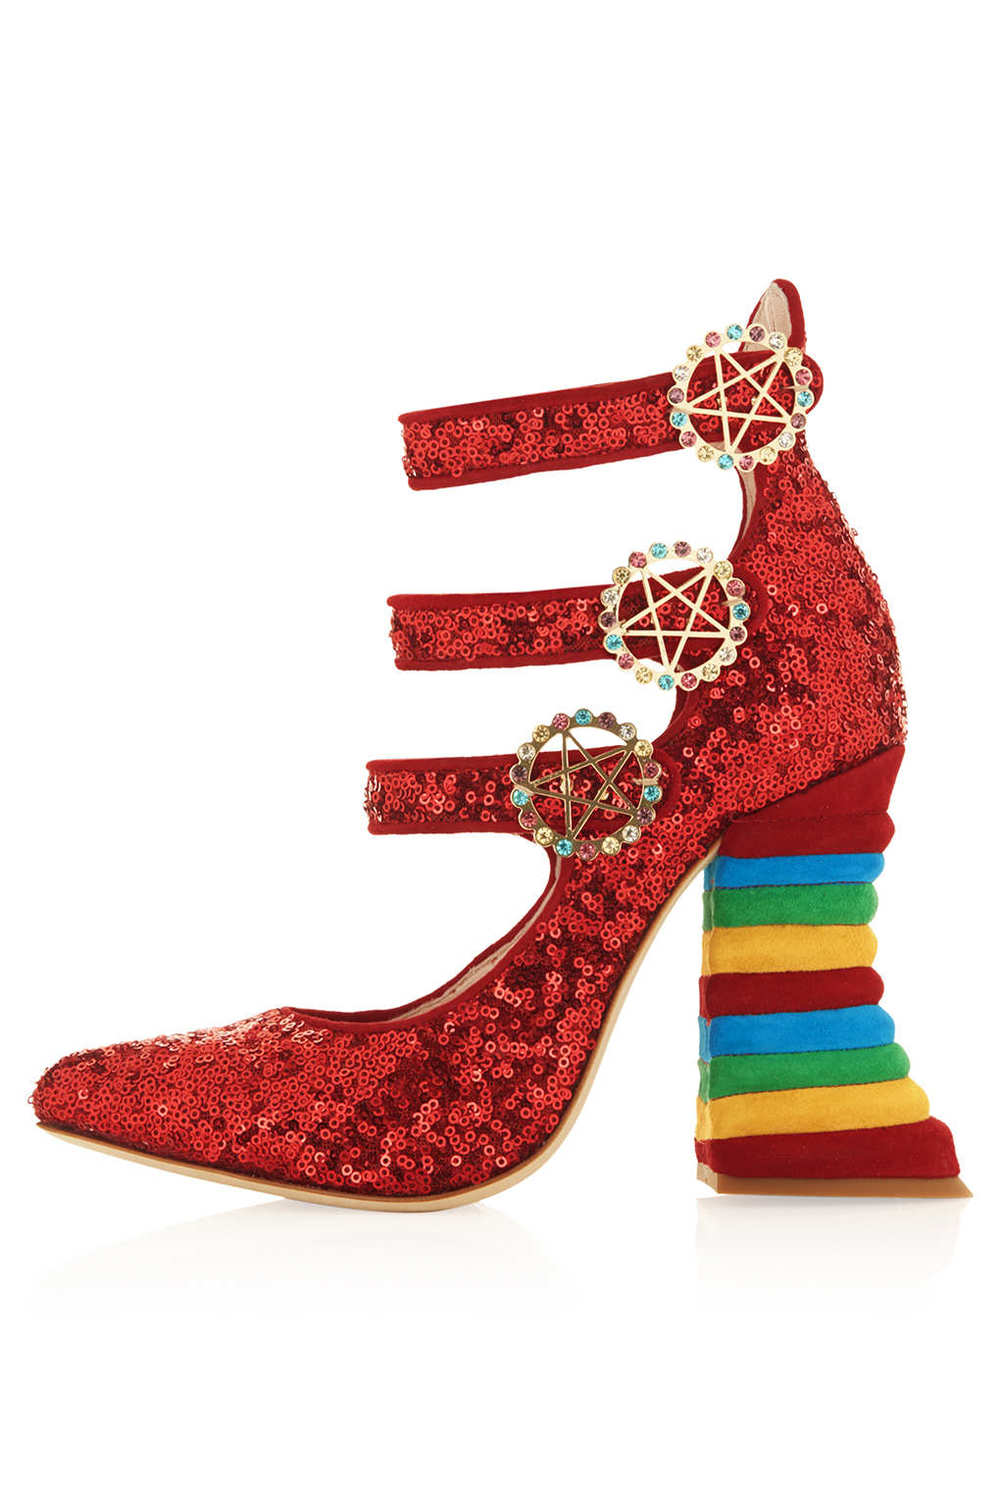 RED SEQUIN RAINBOW HEELS BY MEADHAM KIRCHHOFF 2.jpg